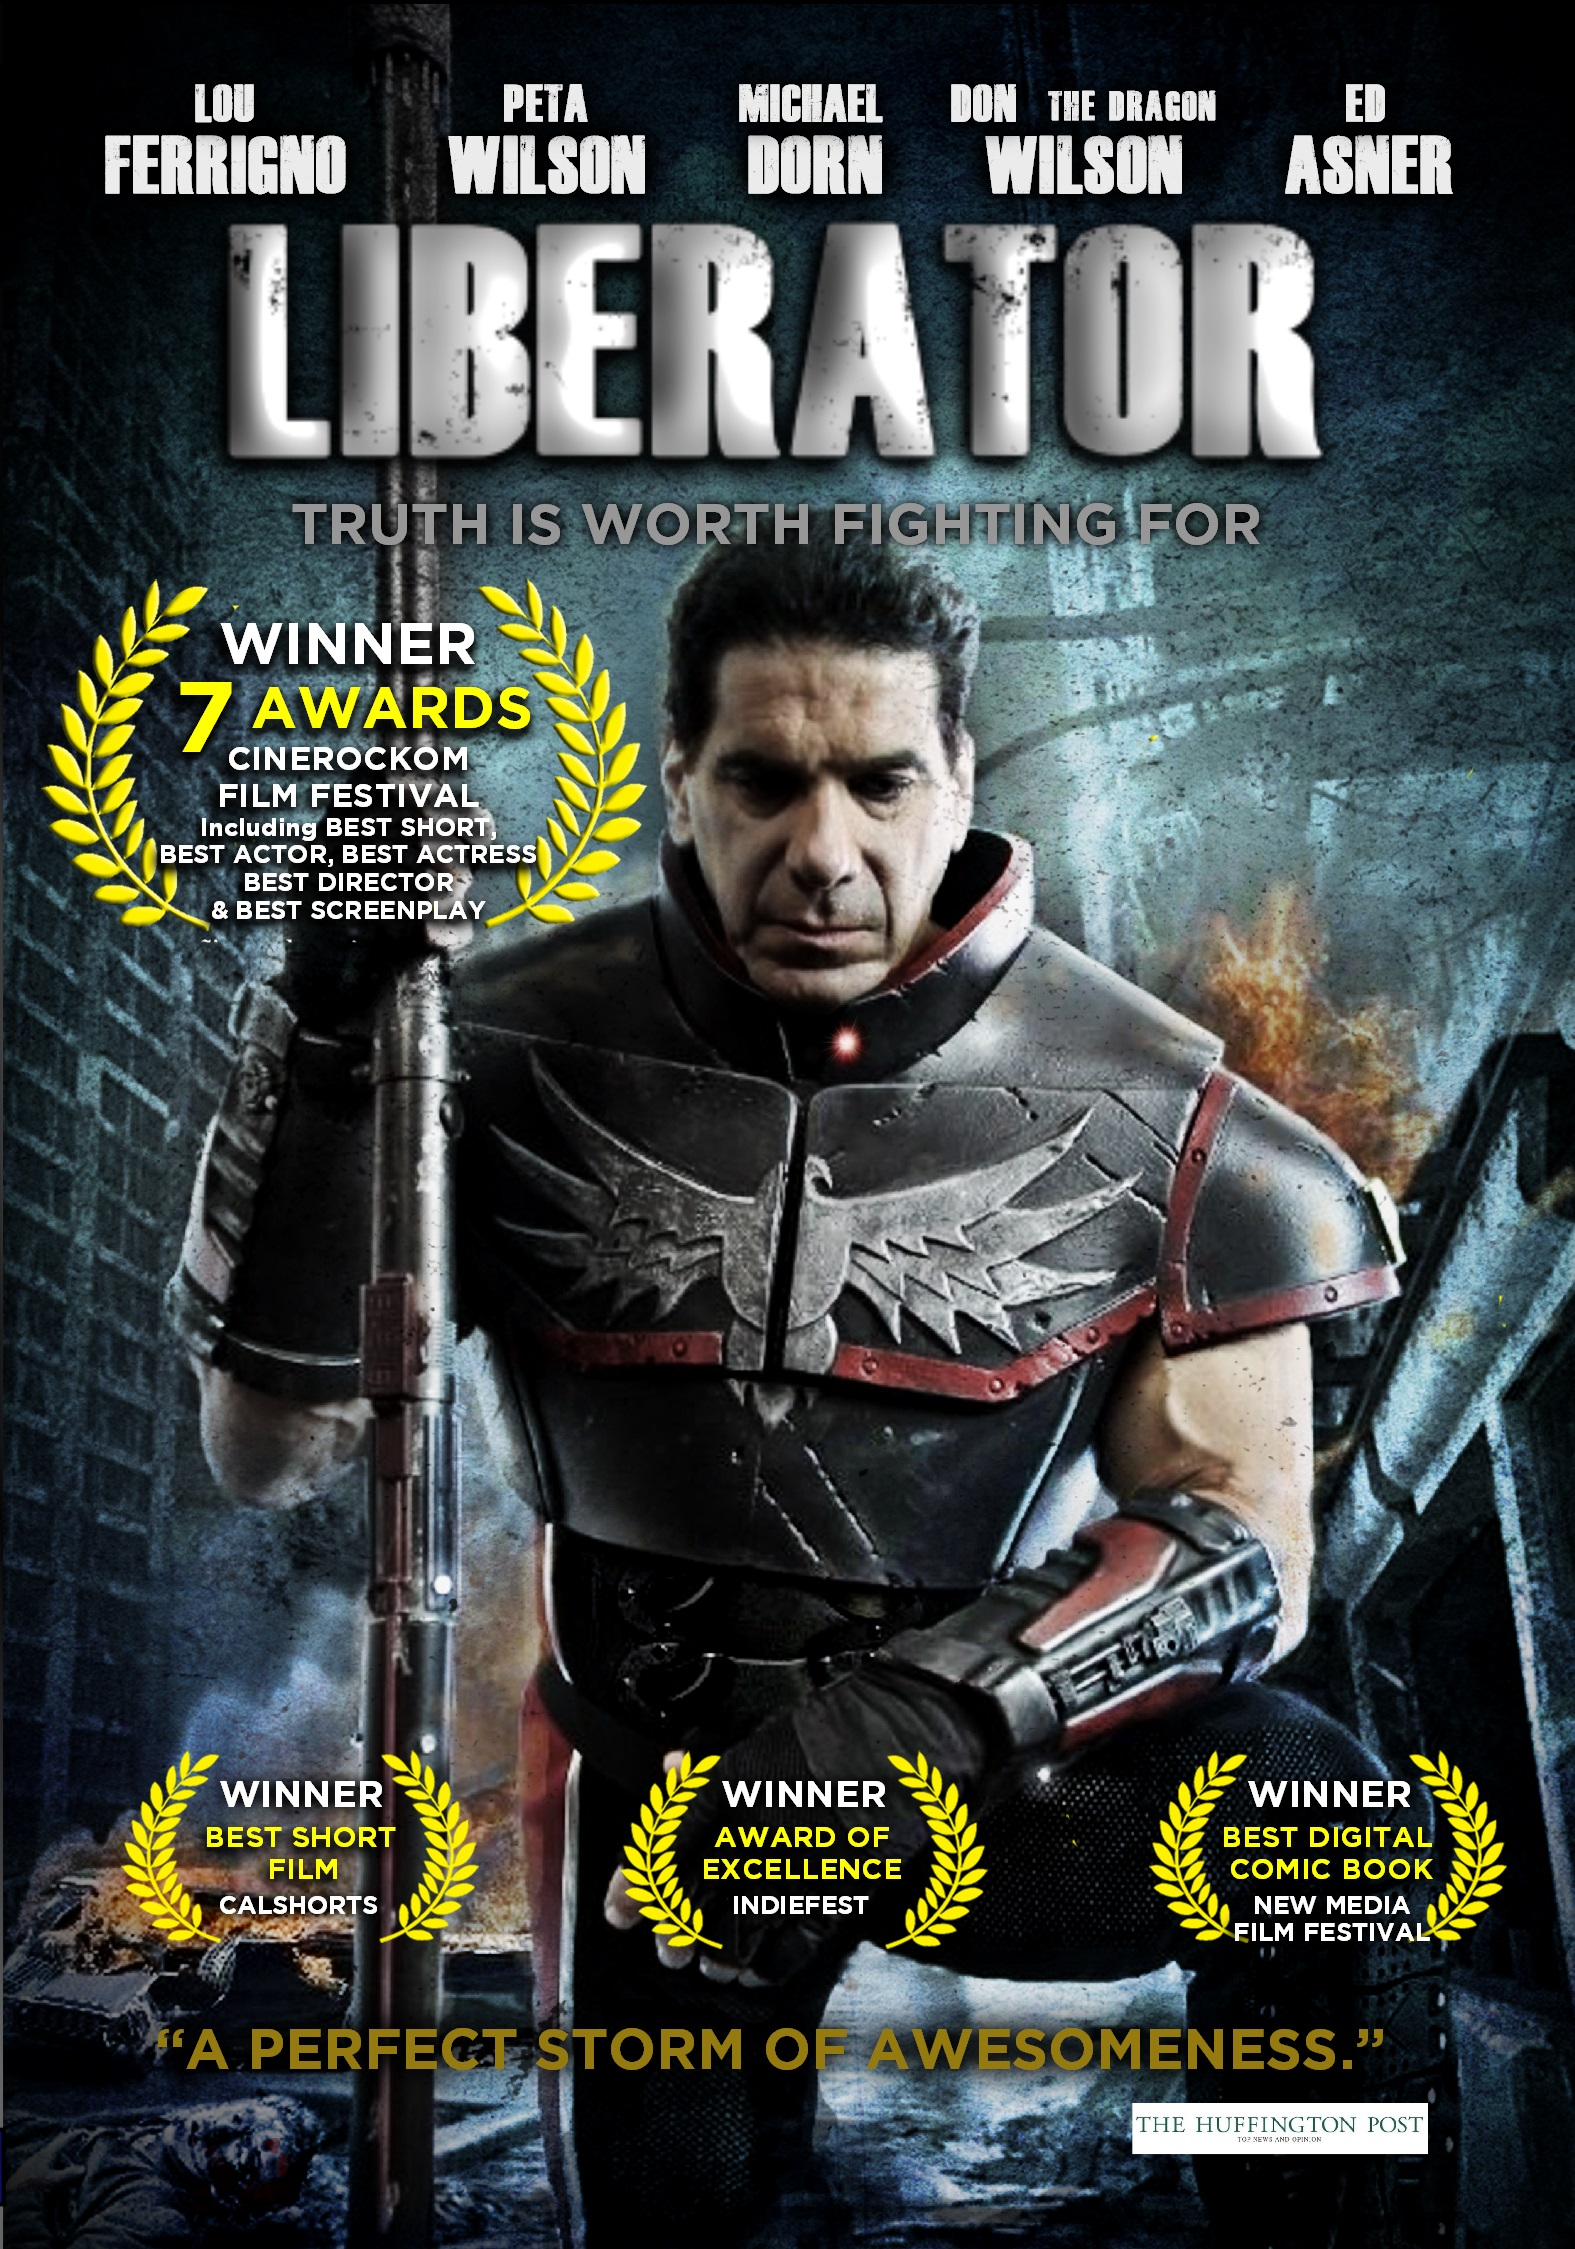 Lou Ferrignos Award Winning Liberator Just Released On Dvd And